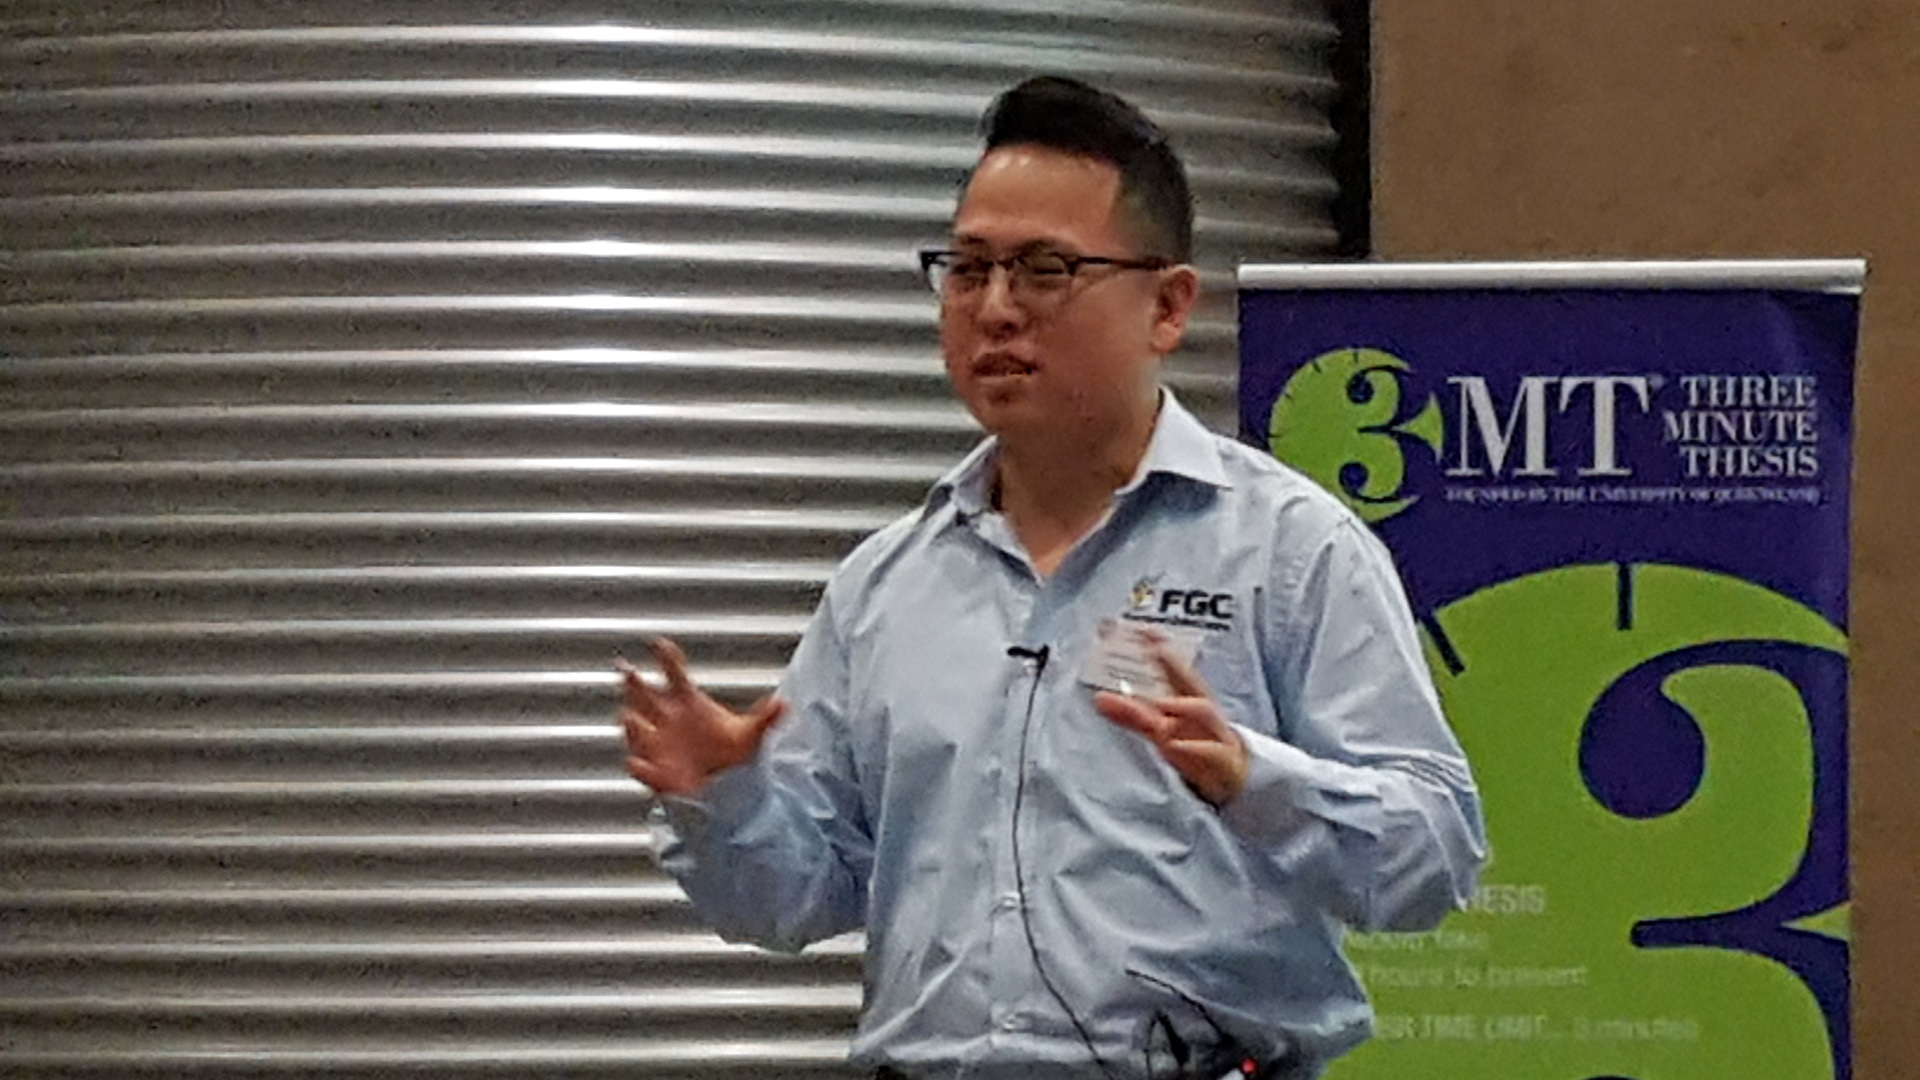 James Lee presenting at the 3MT